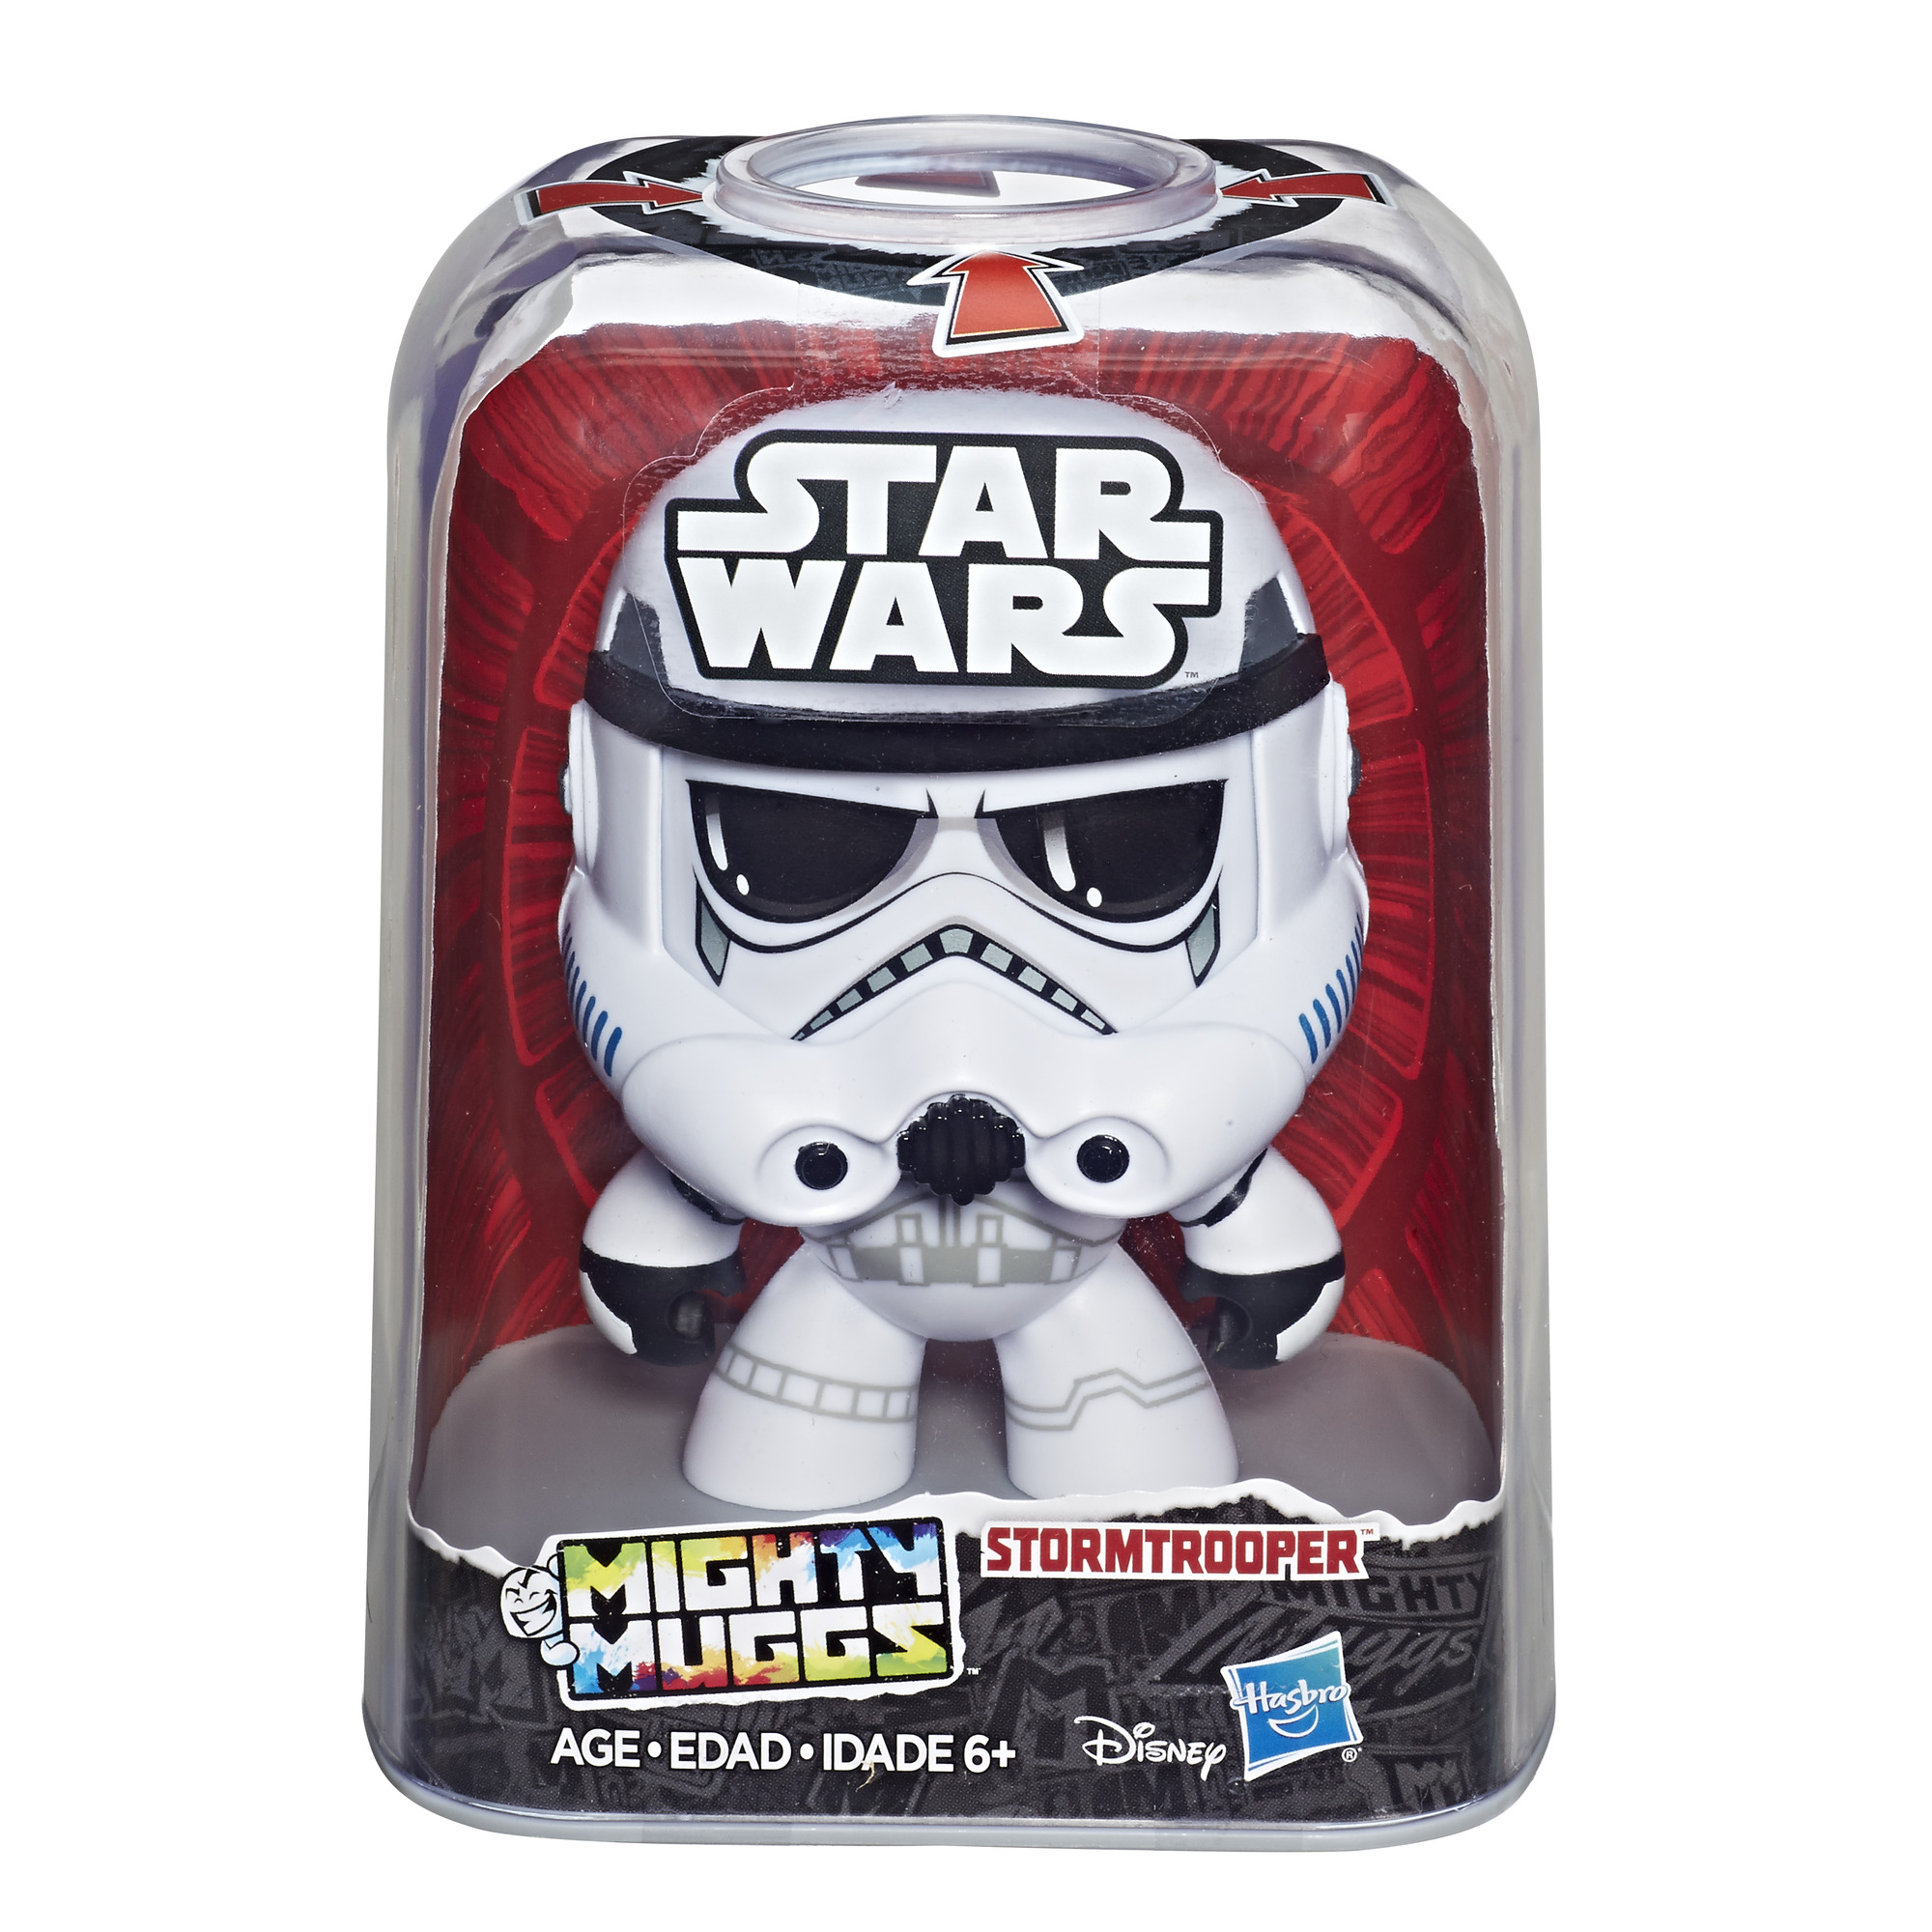 Solo: ASWS Imperial Stormtrooper Mighty Muggs Figure 1